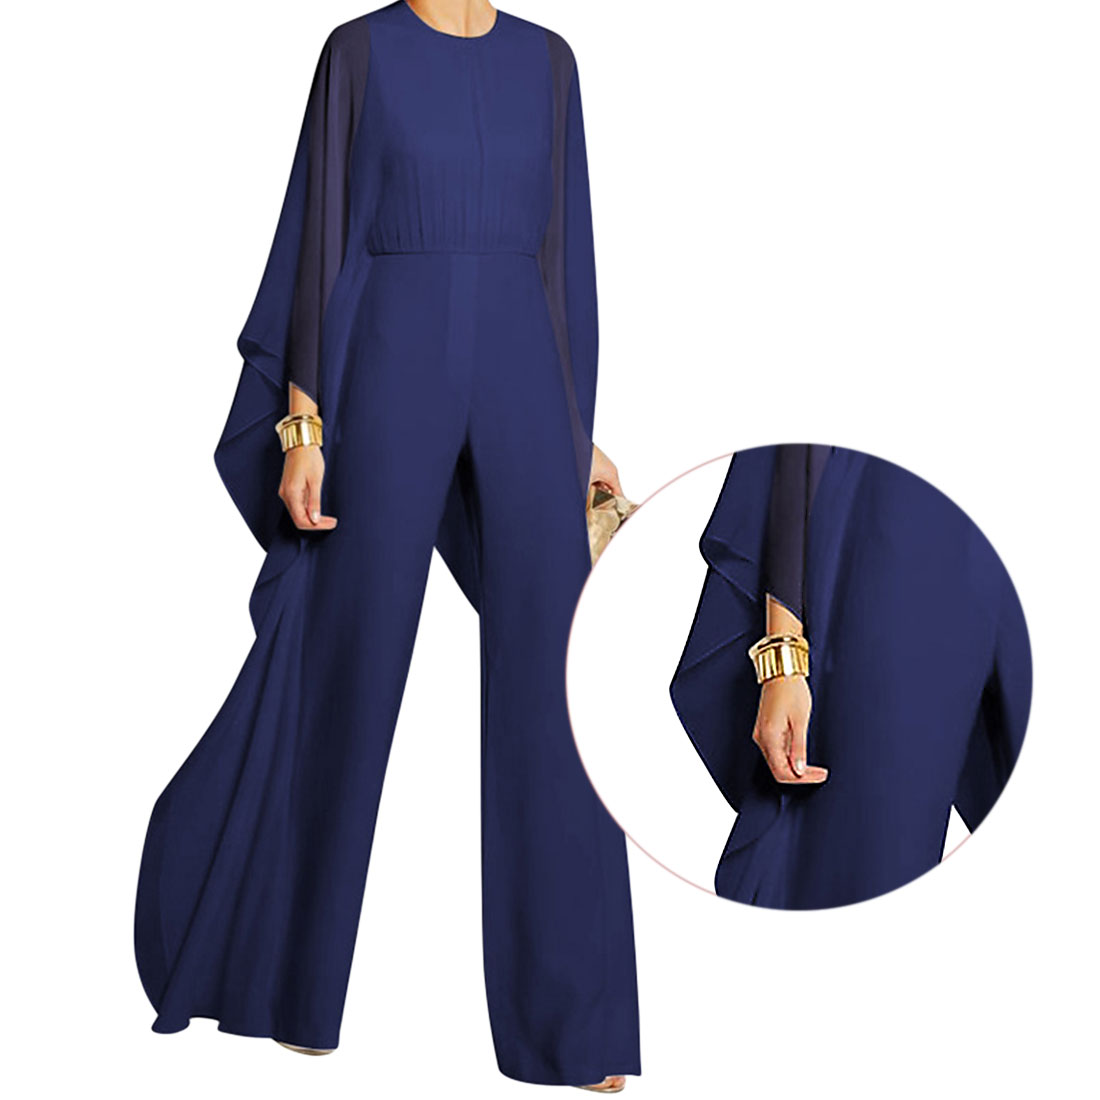 High Quality 2017 Spring Women Casual Elegant Fashion Solid Long Sleeves Wide Pants Jumpsuits